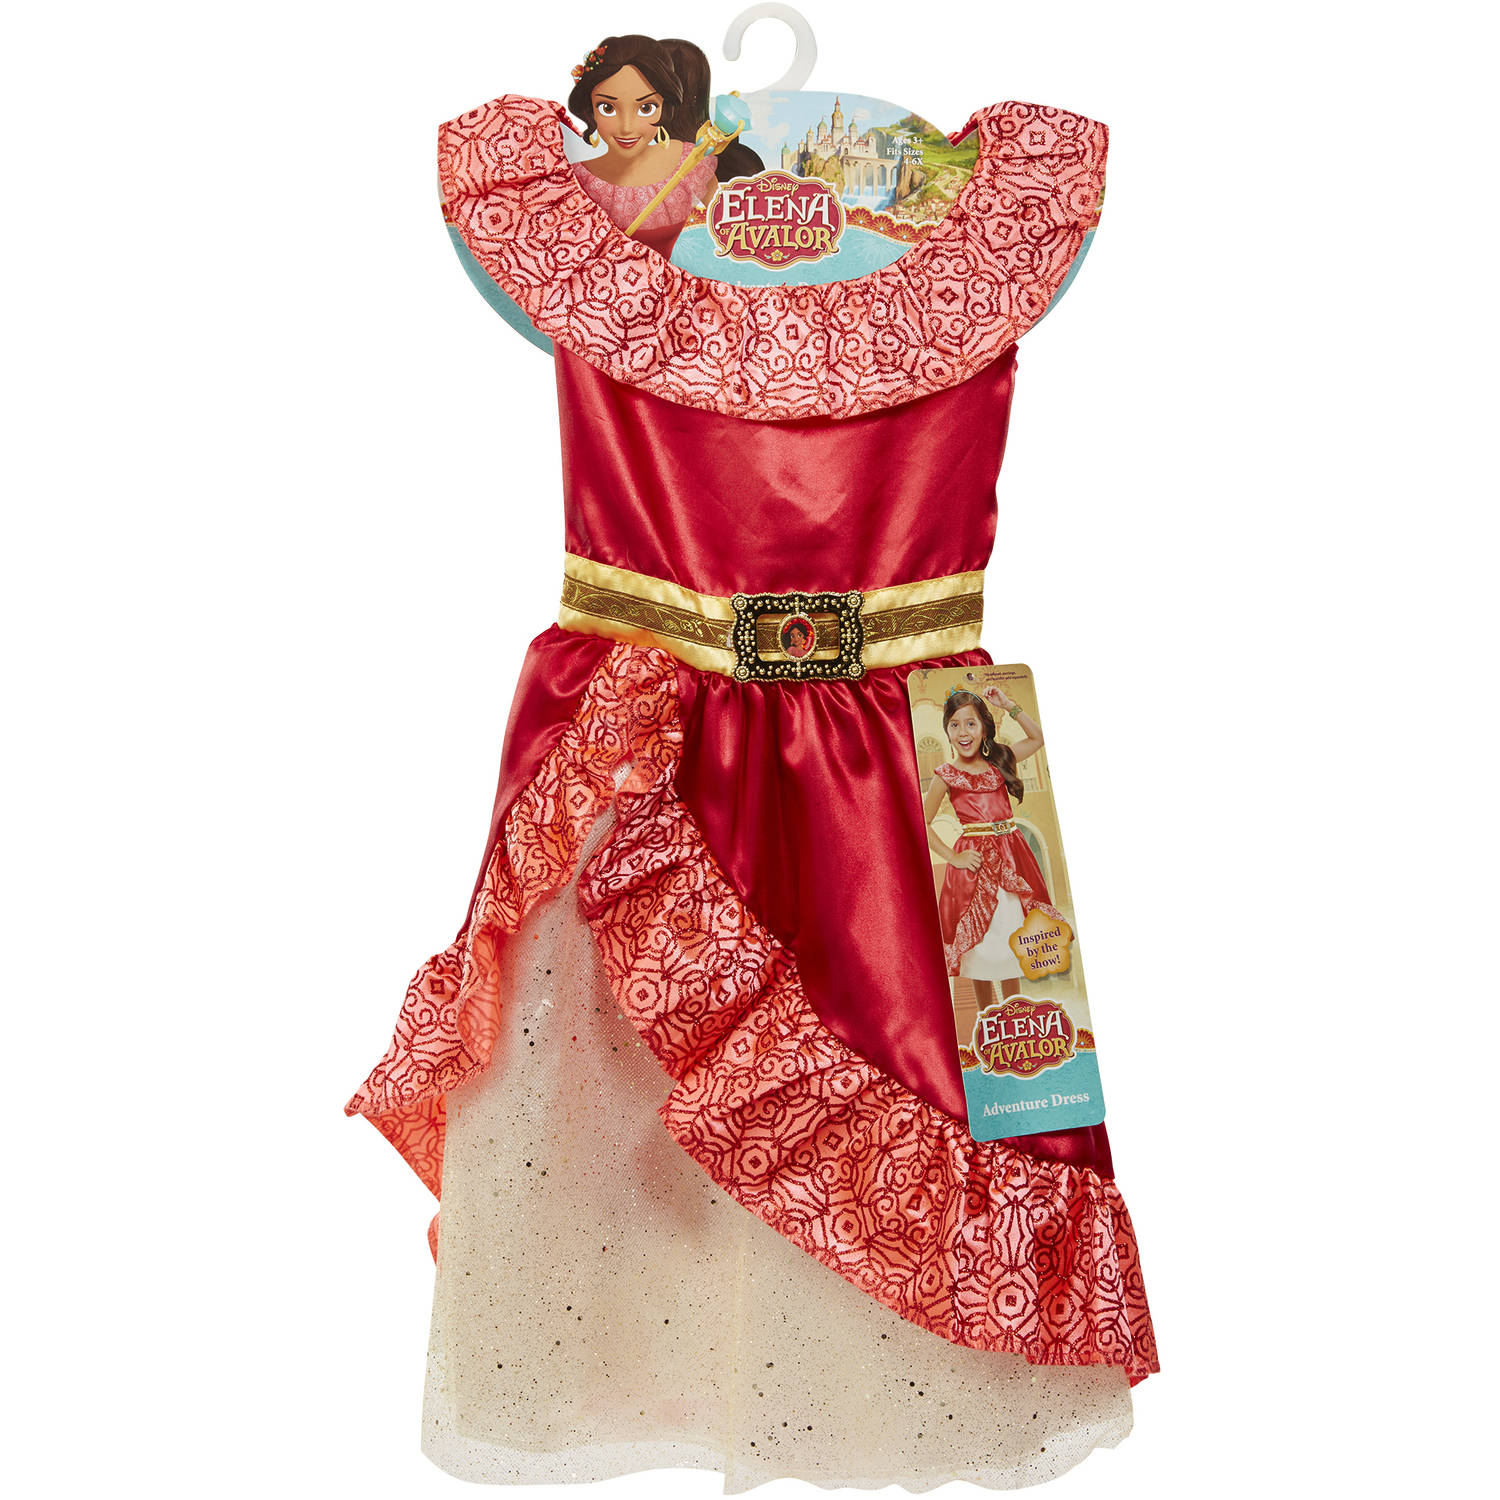 Disney Princess Elena of Avalor Adventure Dress Walmart